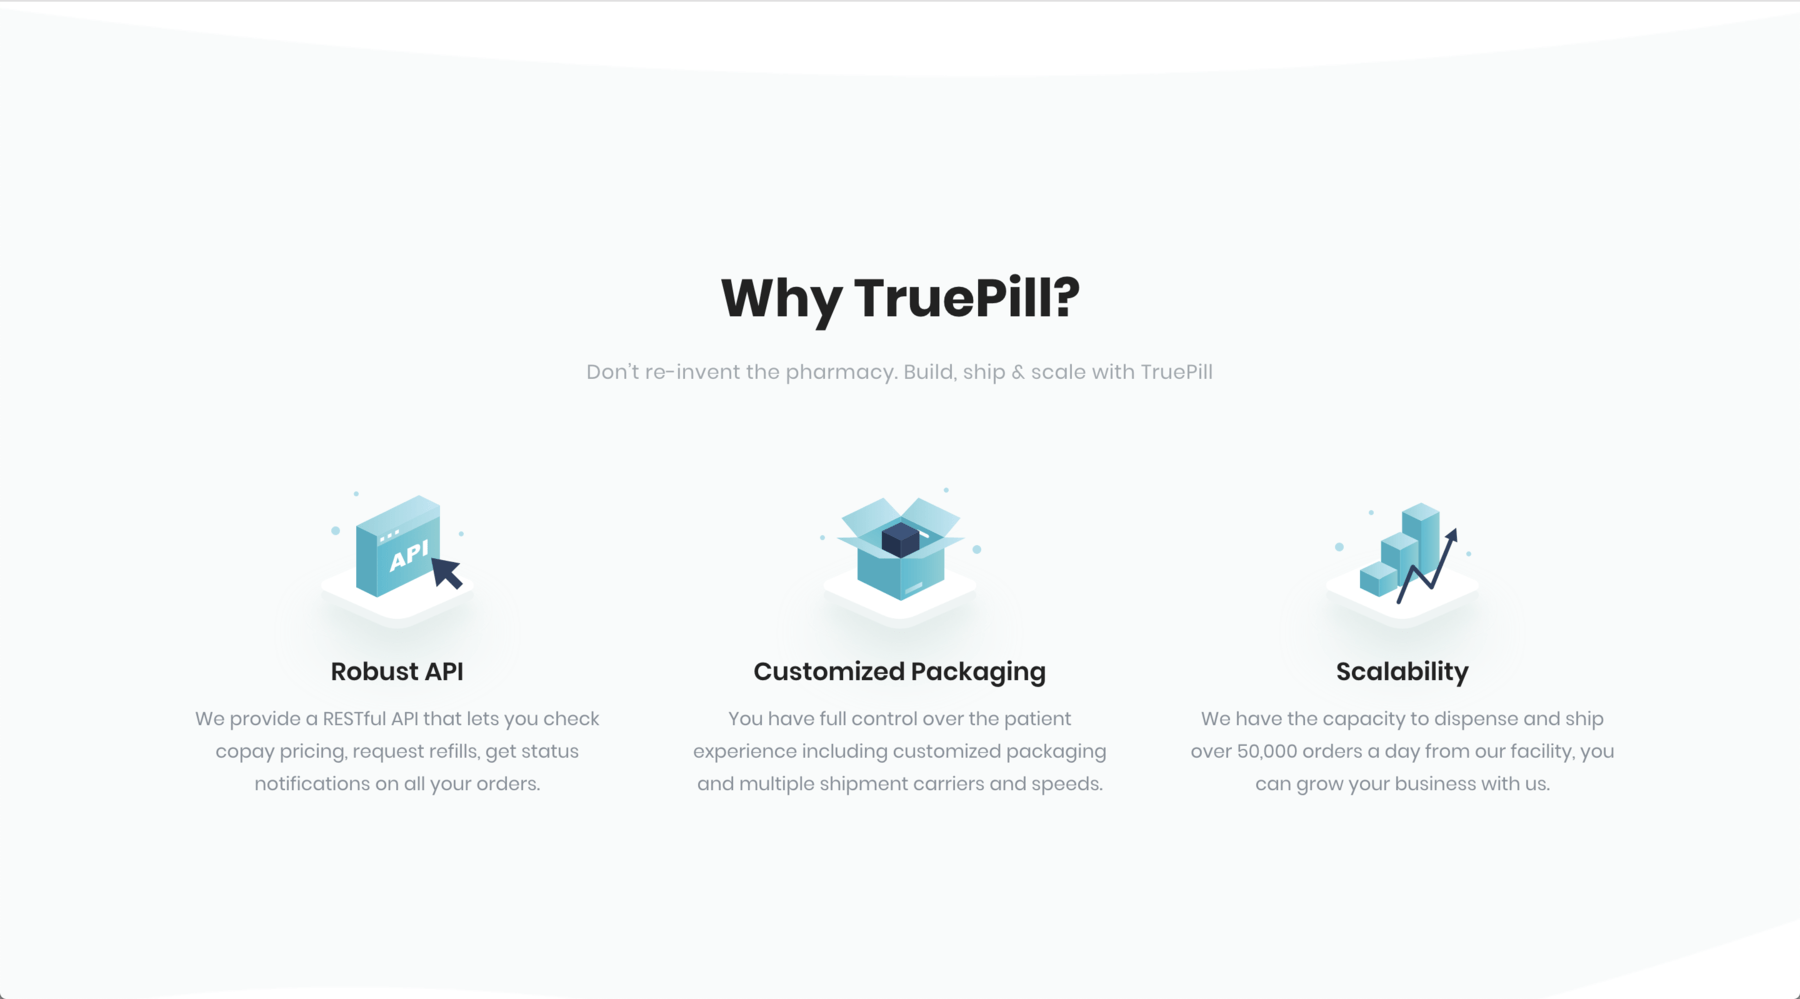 Truepill raises $14 million to deliver pills to your doorstep